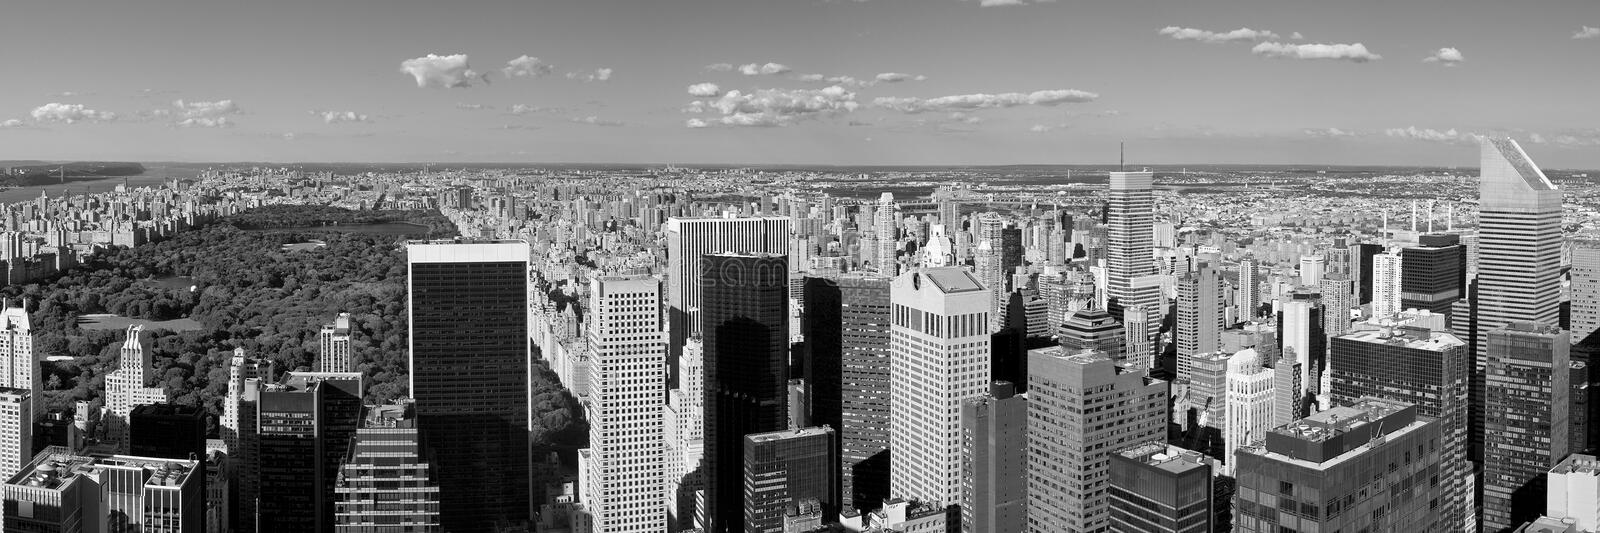 Midtown de New York imagem de stock